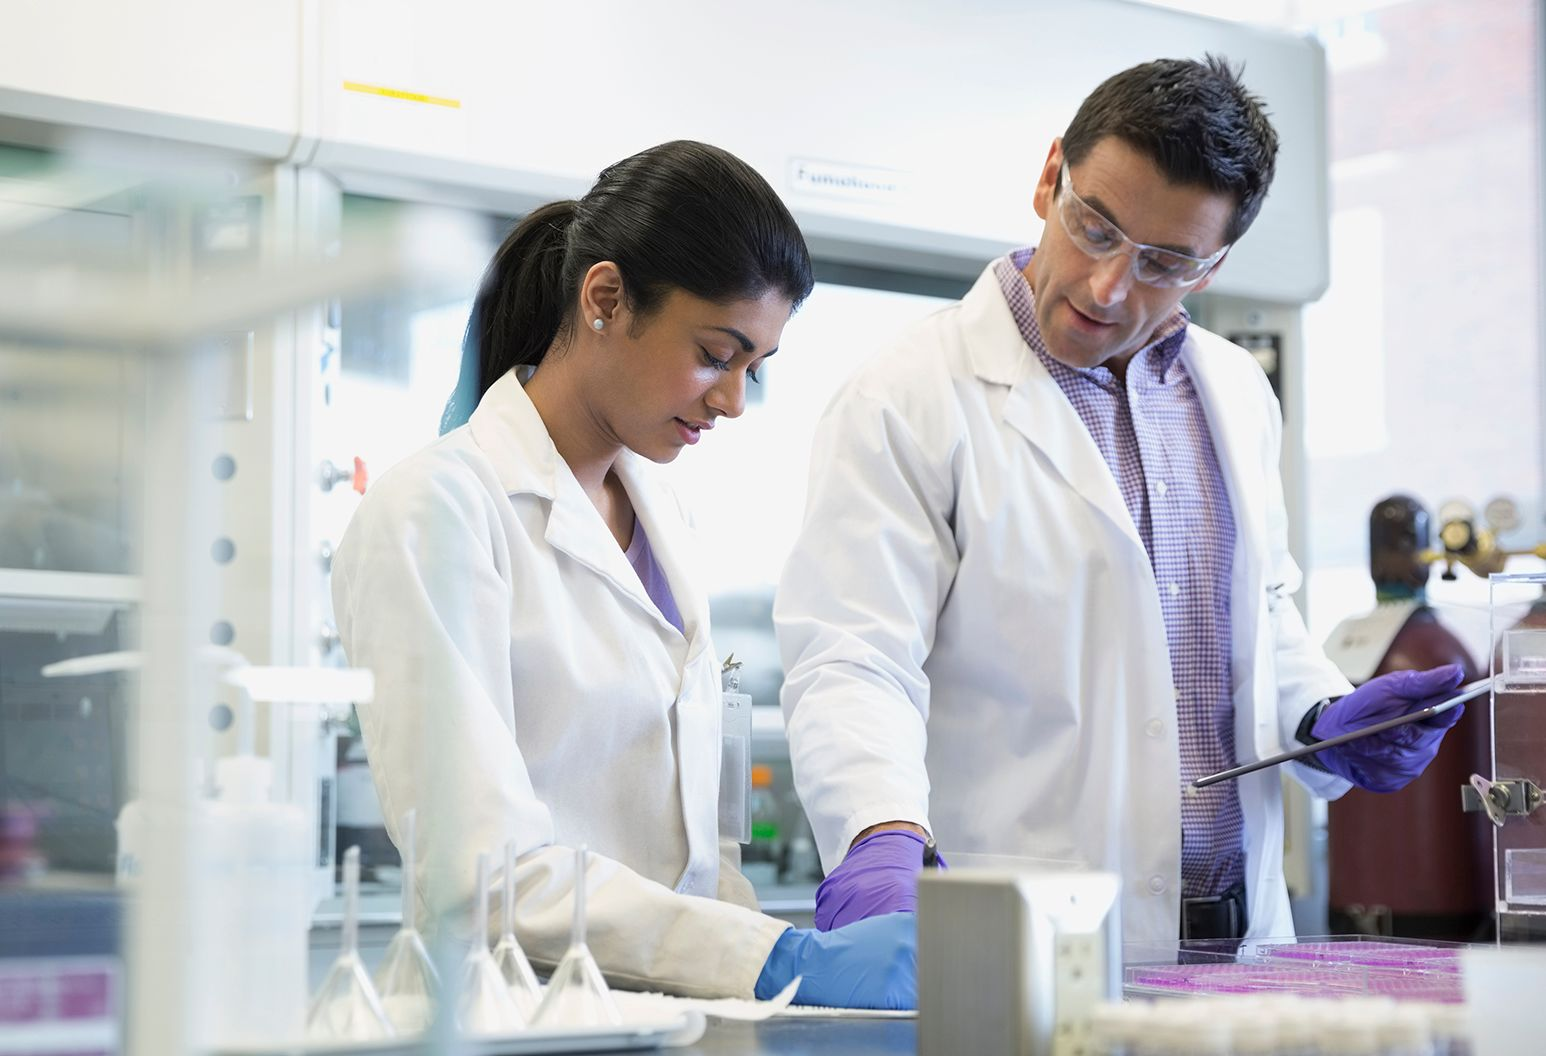 Male and female medical researchers in a lab working together to find a solution.